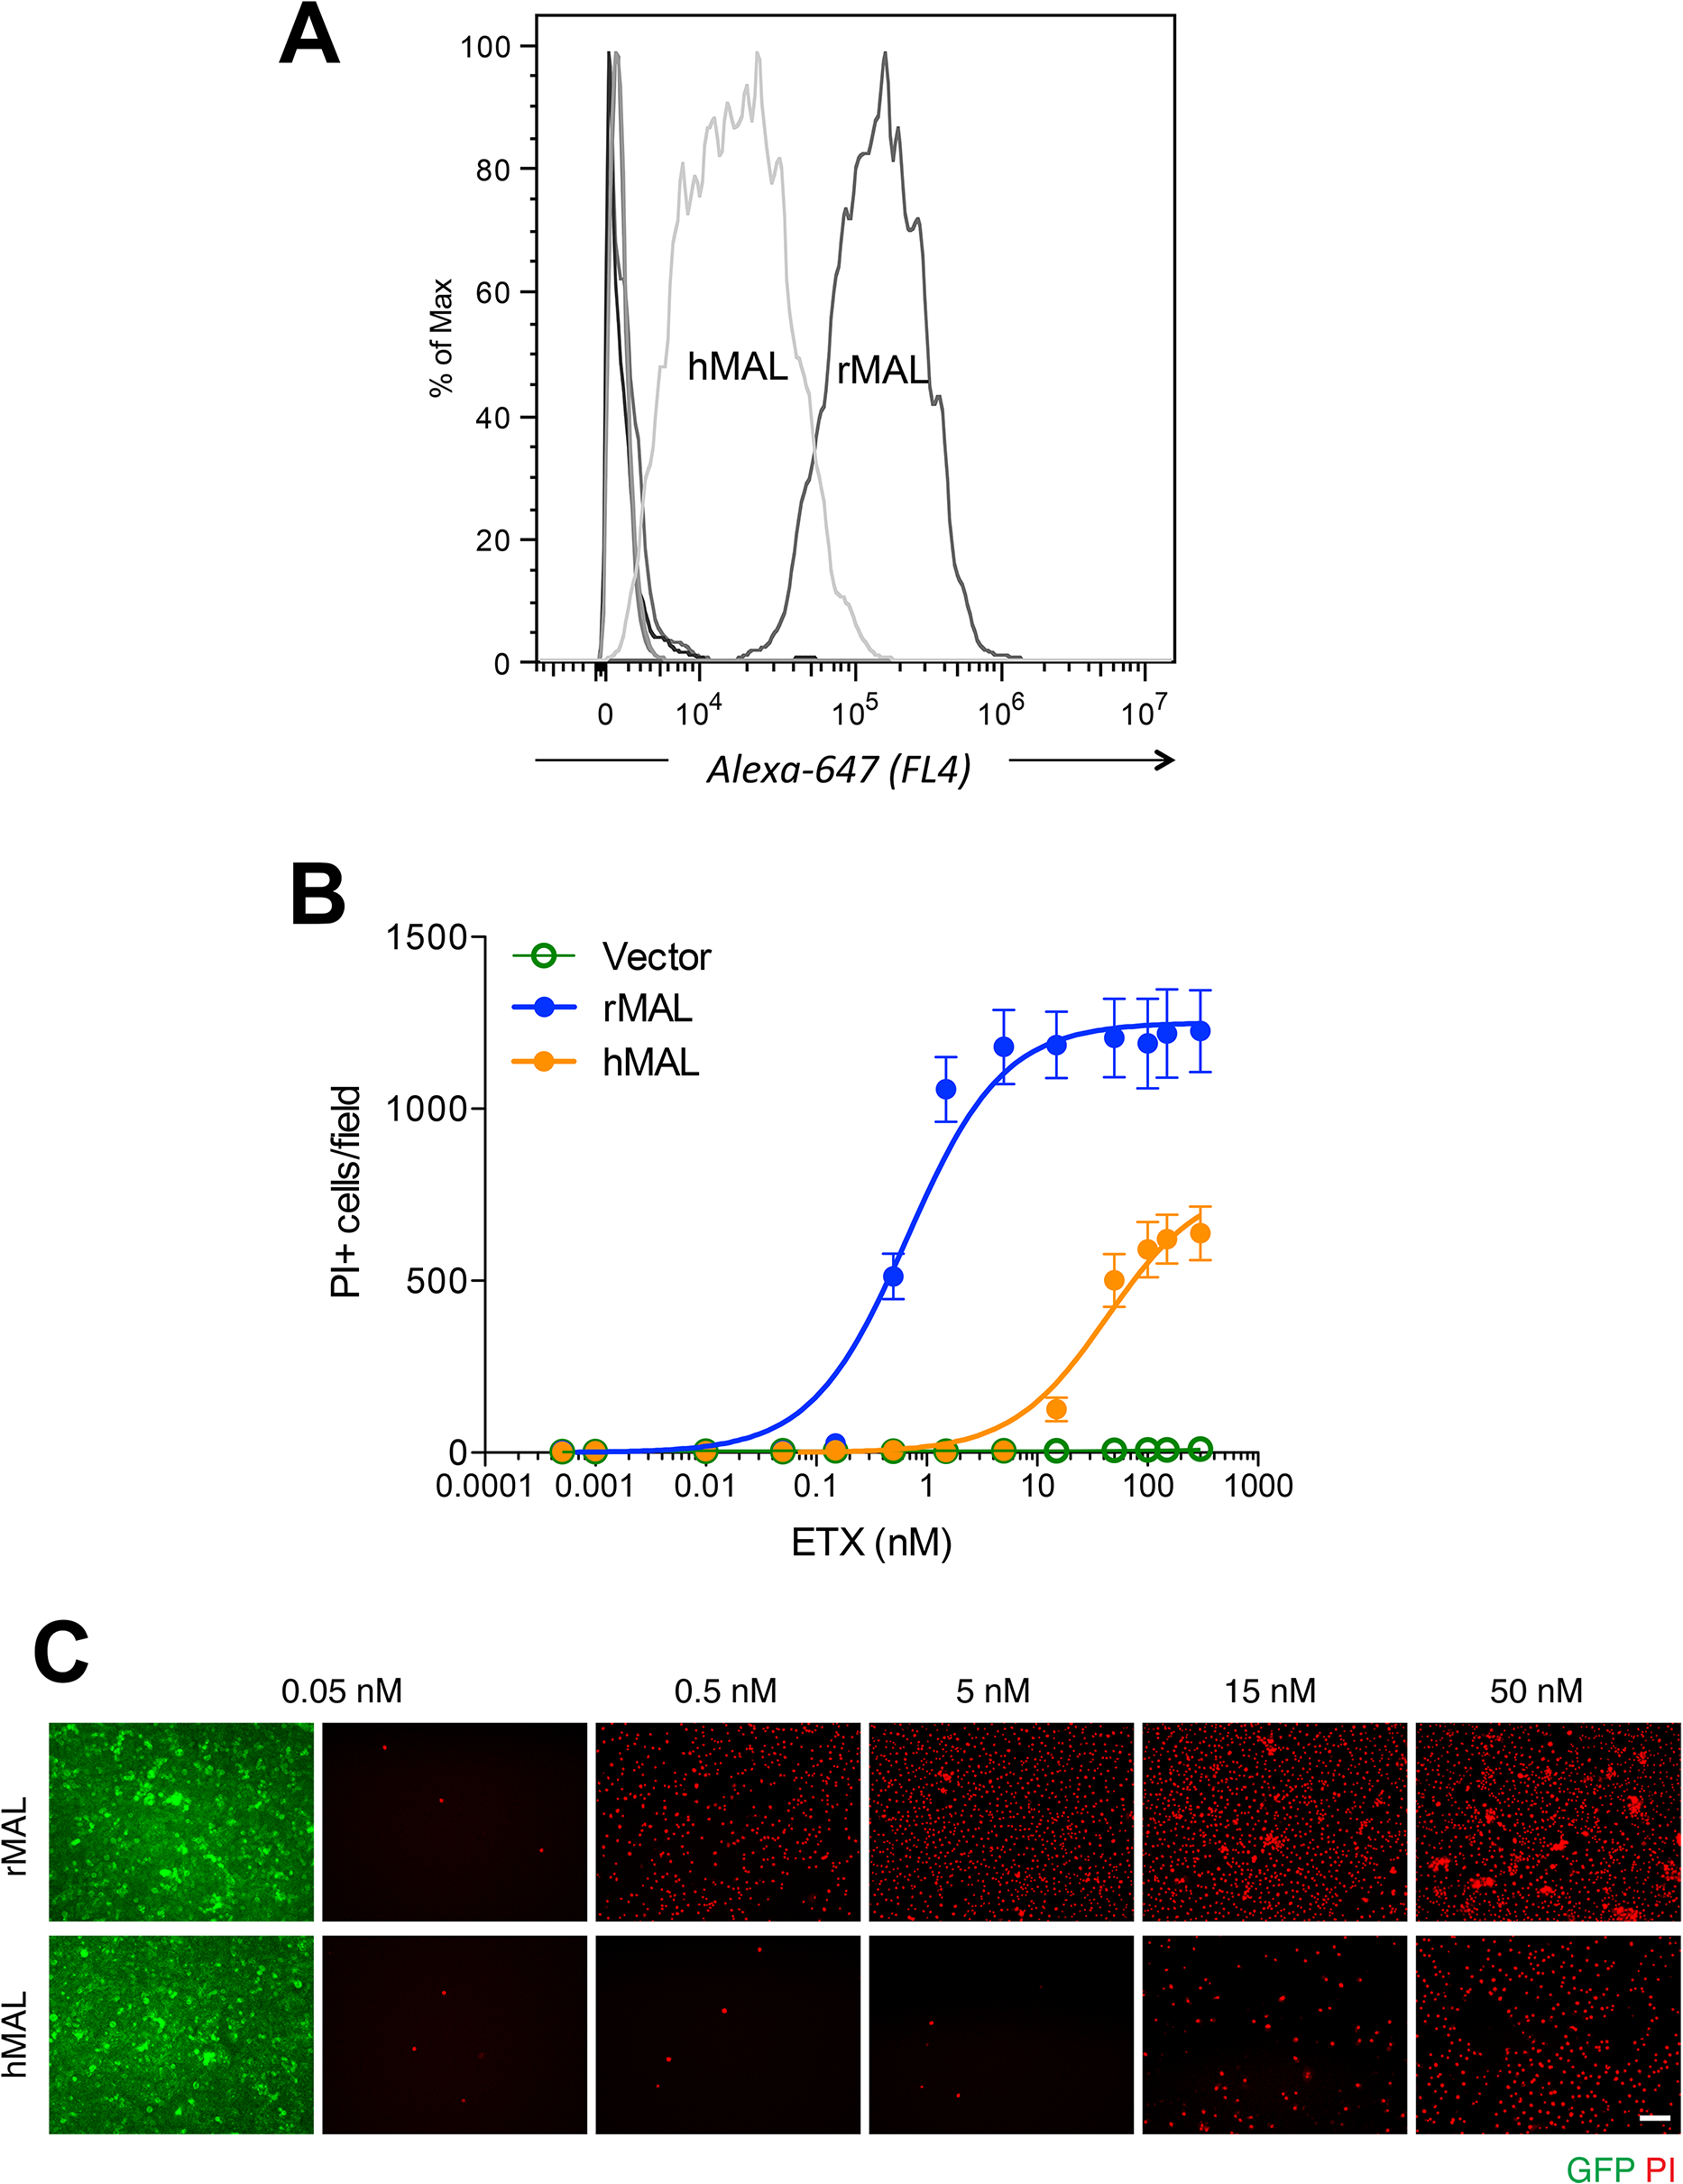 Differential binding and cytotoxicity of ETX to cells expressing MAL orthologues.